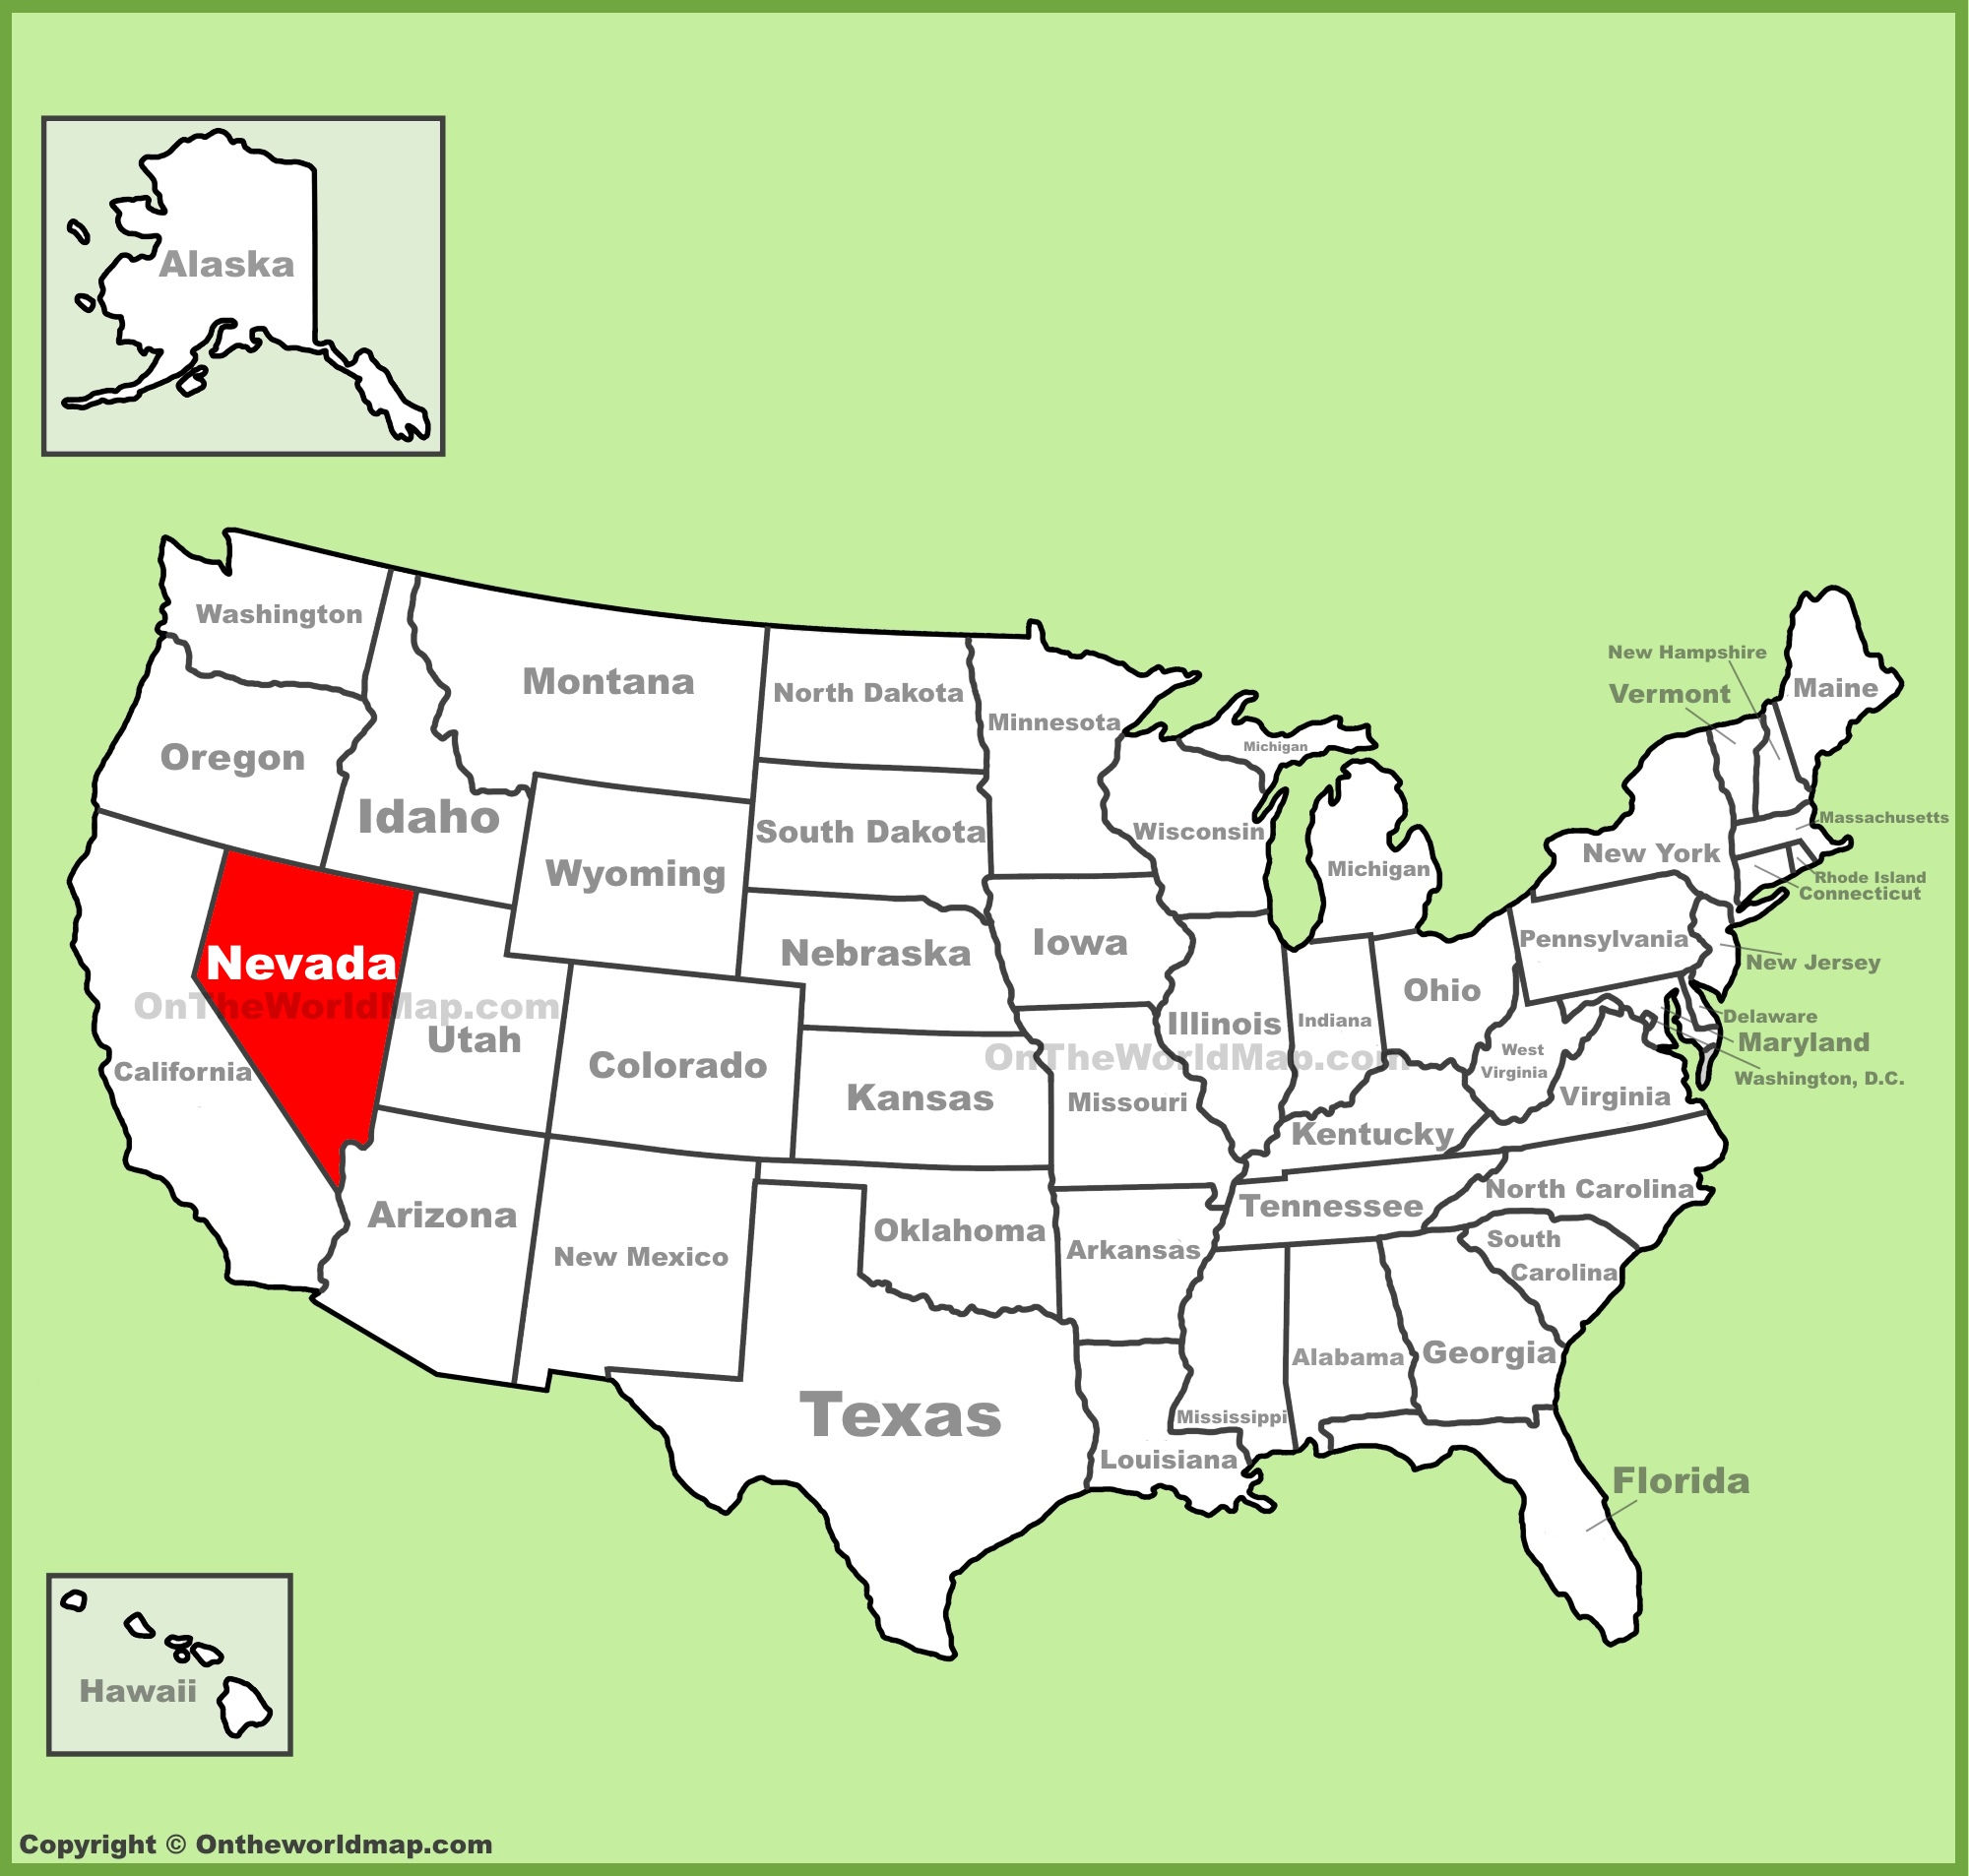 Nevada location on the U.S. Map